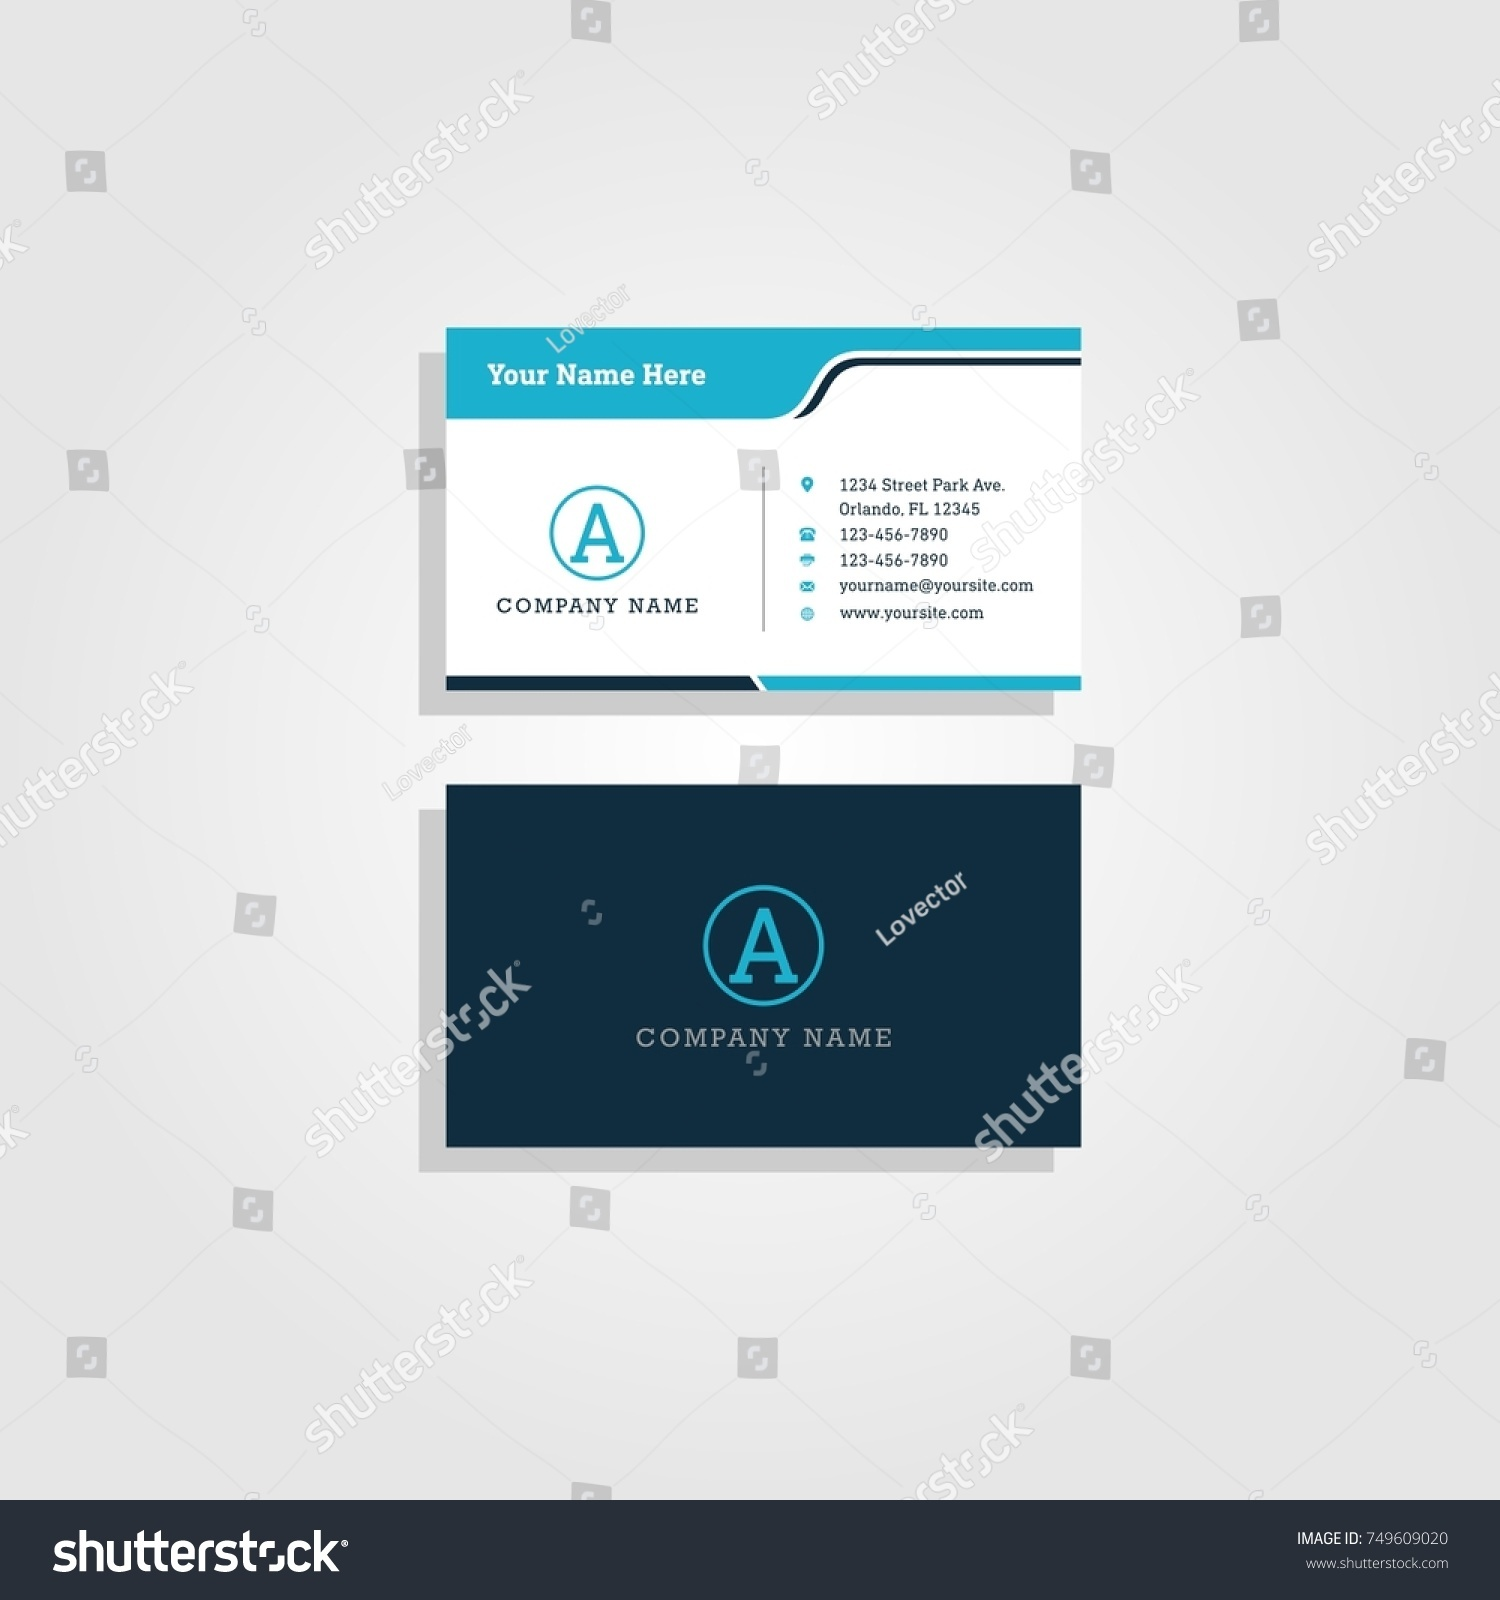 Chauffeur Business Cards Images - Free Business Cards